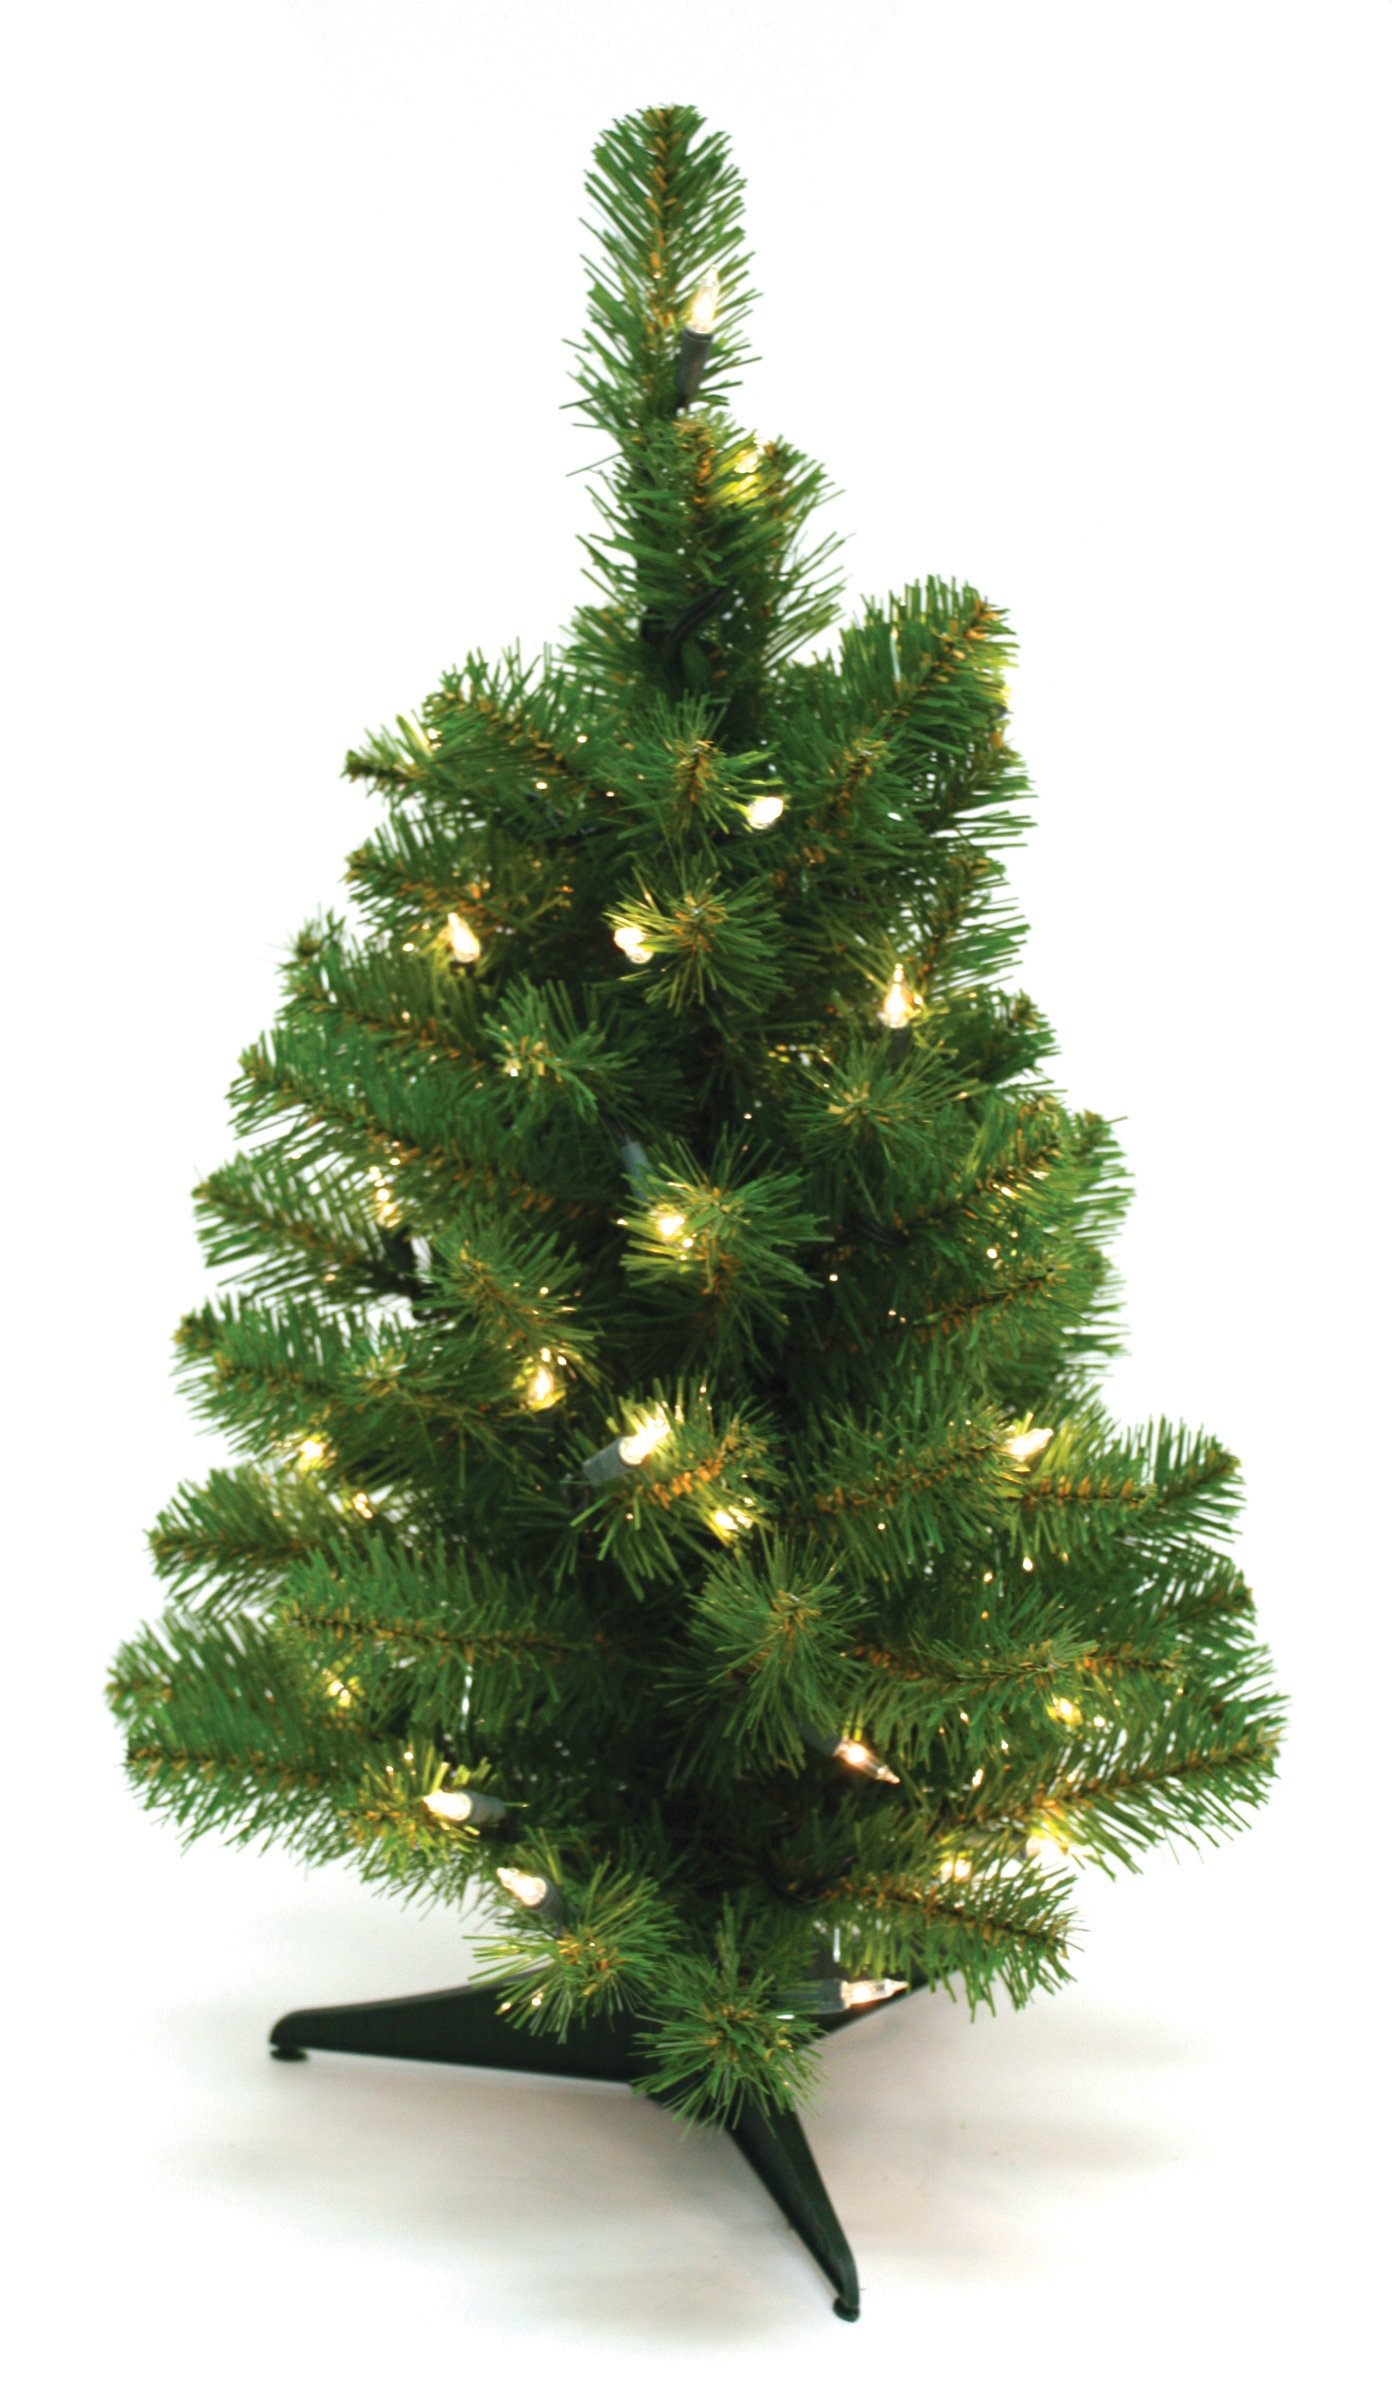 Special Happy Corp LTD Canadian Artificial Prelit Tabletop Christmas Tree, 2-Feet, Clear Lights